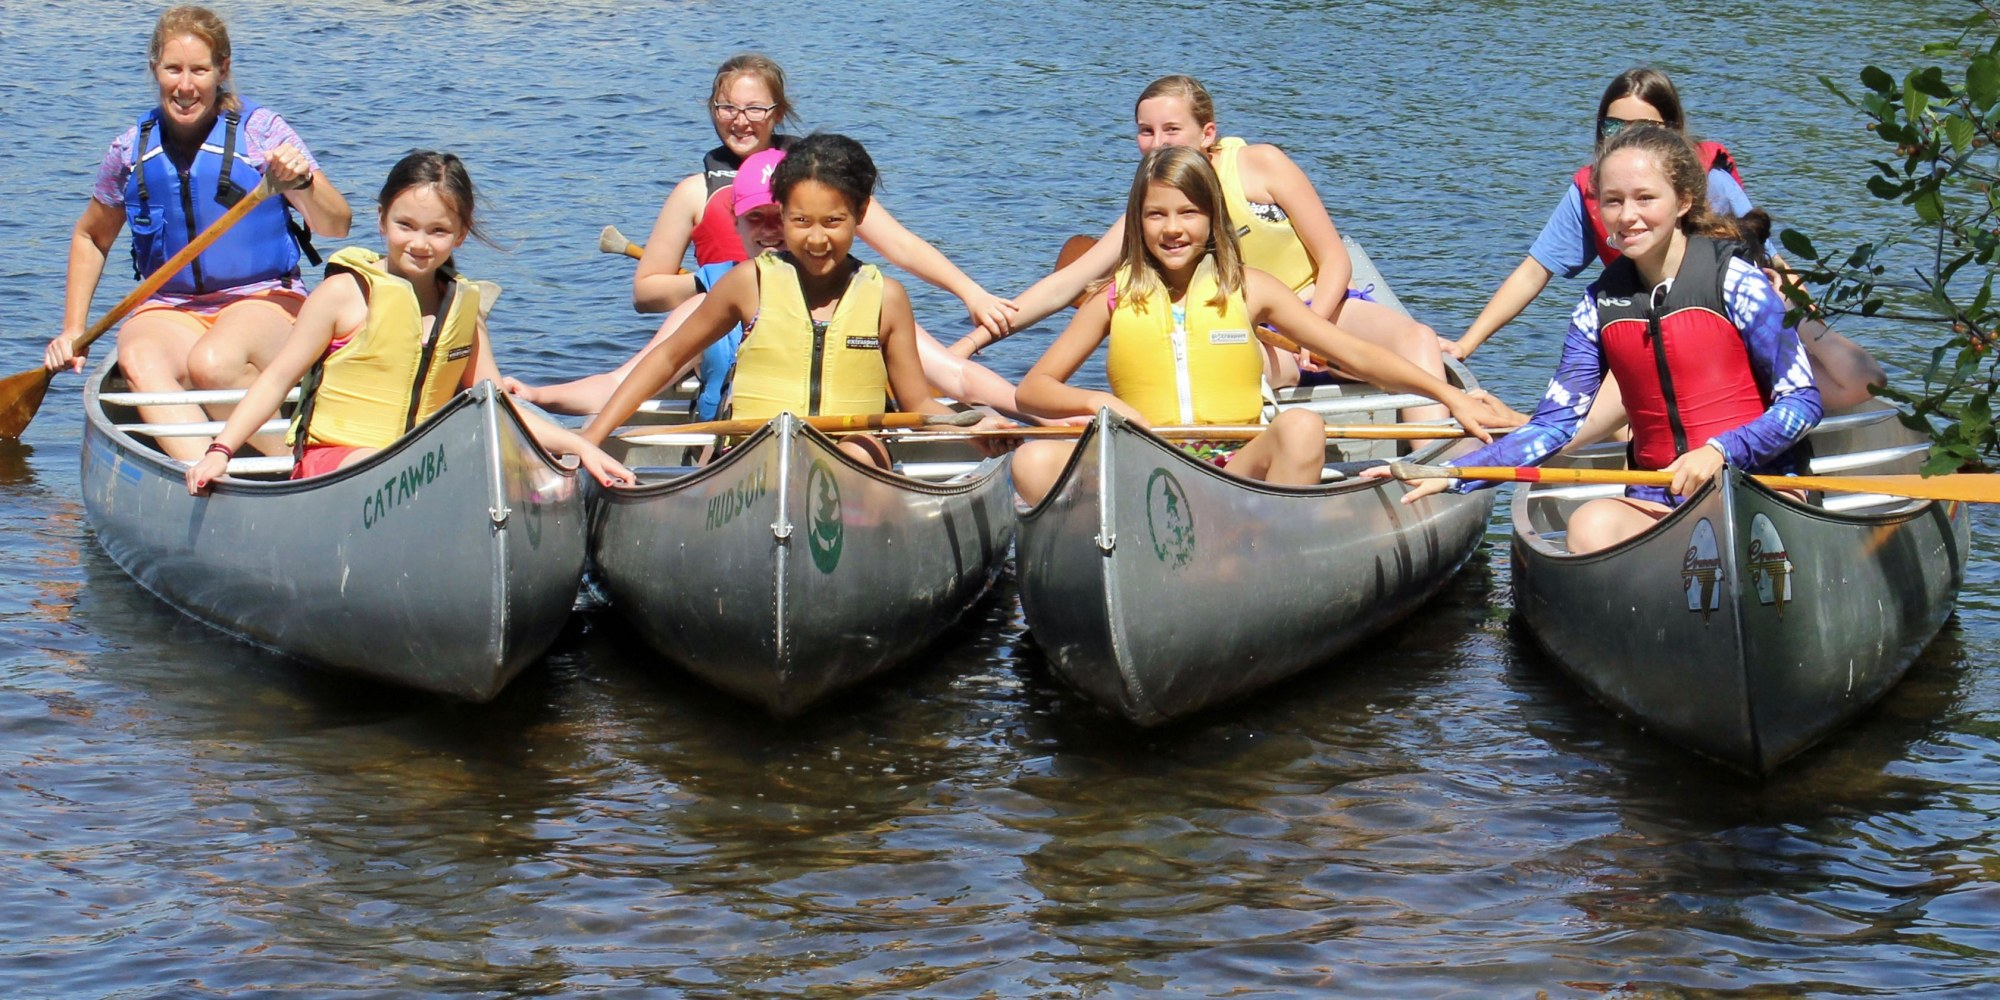 Whippoorwill  Campers and Counselor in Canoes on Lake